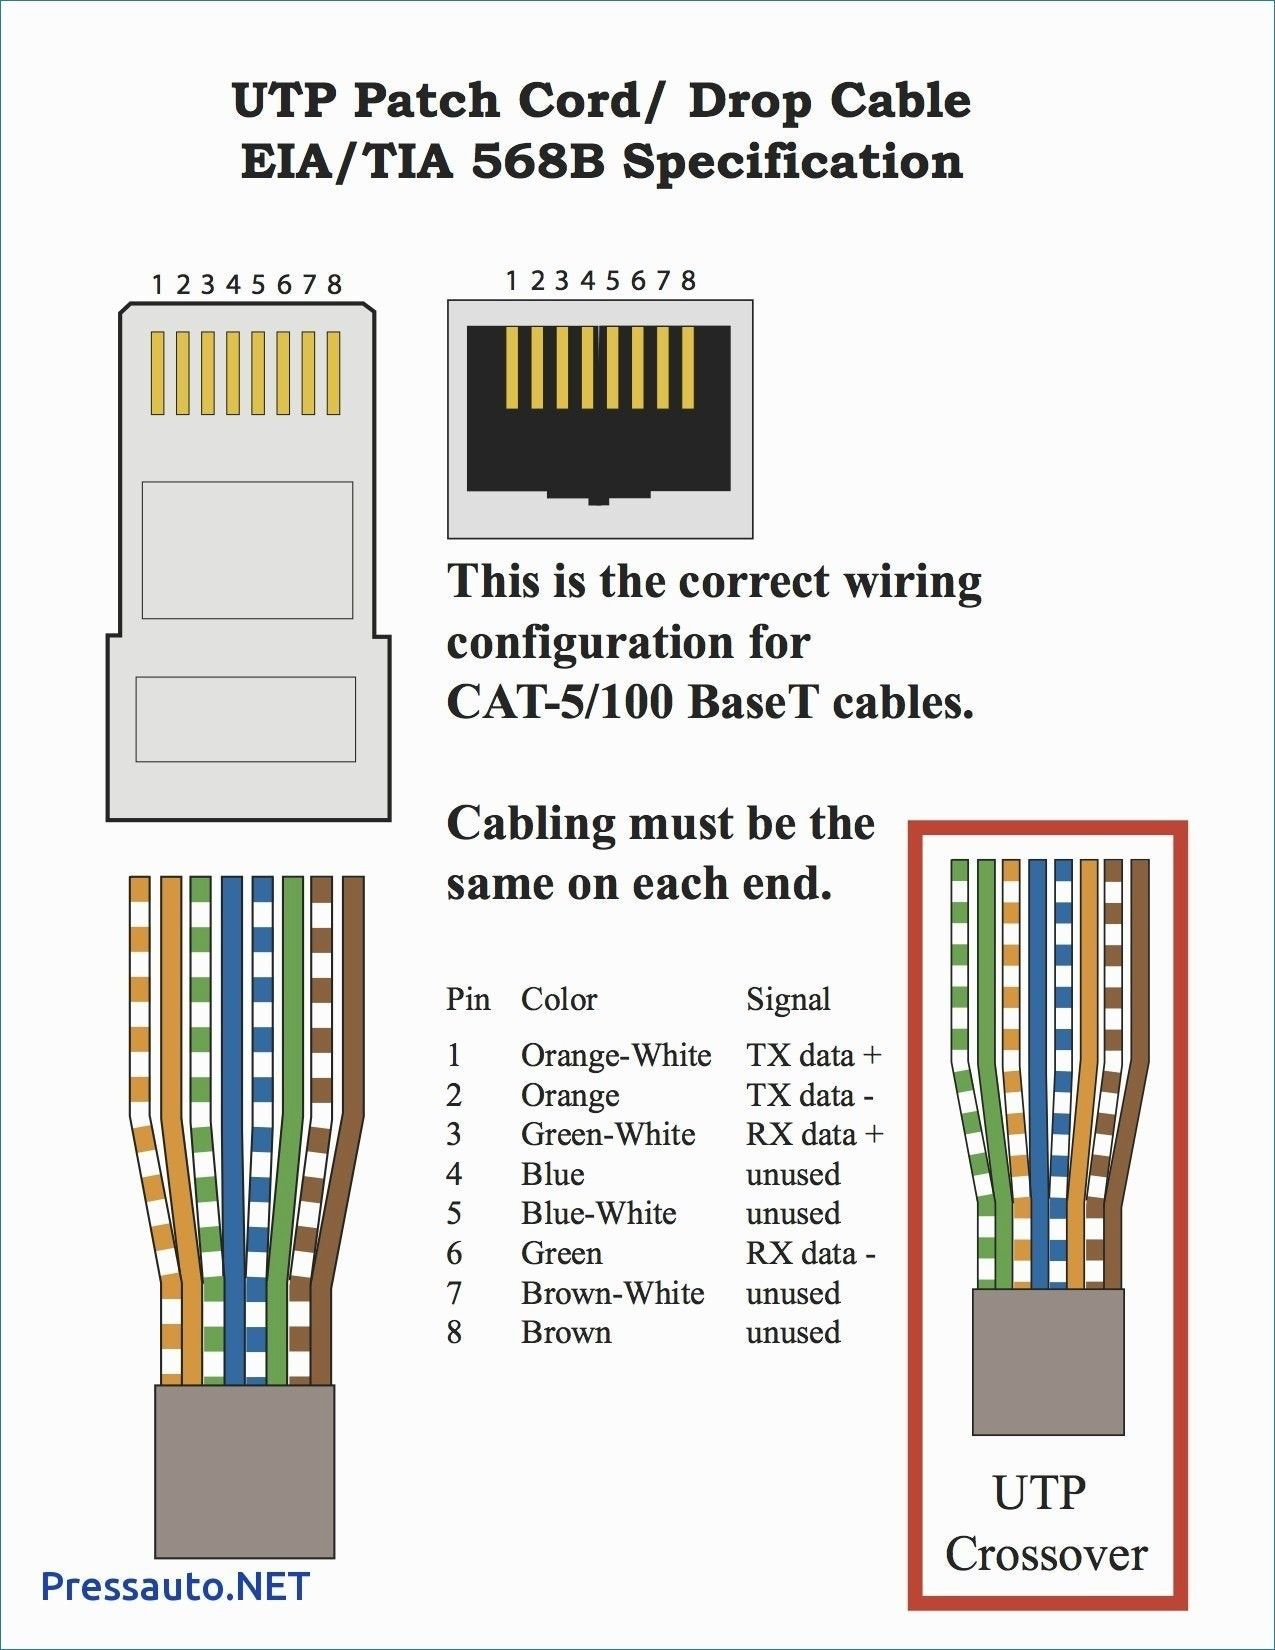 New Wiring Diagram For Ethernet Jack Diagram Diagramsample Diagramtemplate Wiringdiagram Diagramchart Worksheet Worksheettemplat Diagram Wire Cat6 Cable